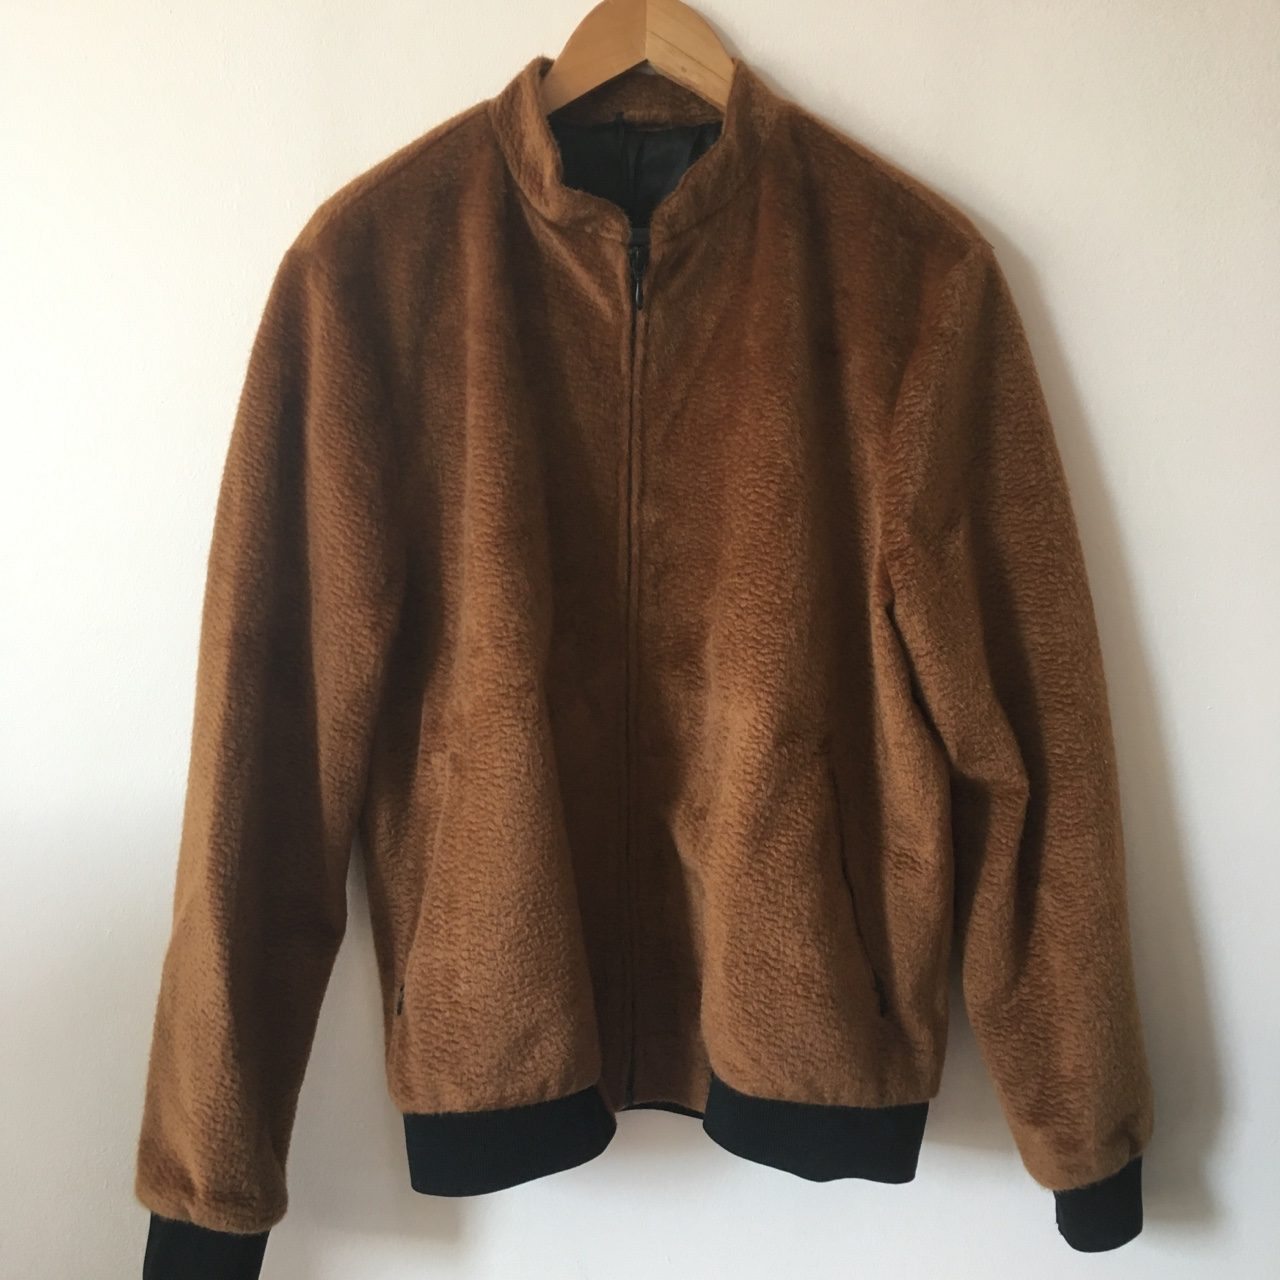 TOPMAN FAUX SHEARLING COAT VARIOUS SIZES BNWOT